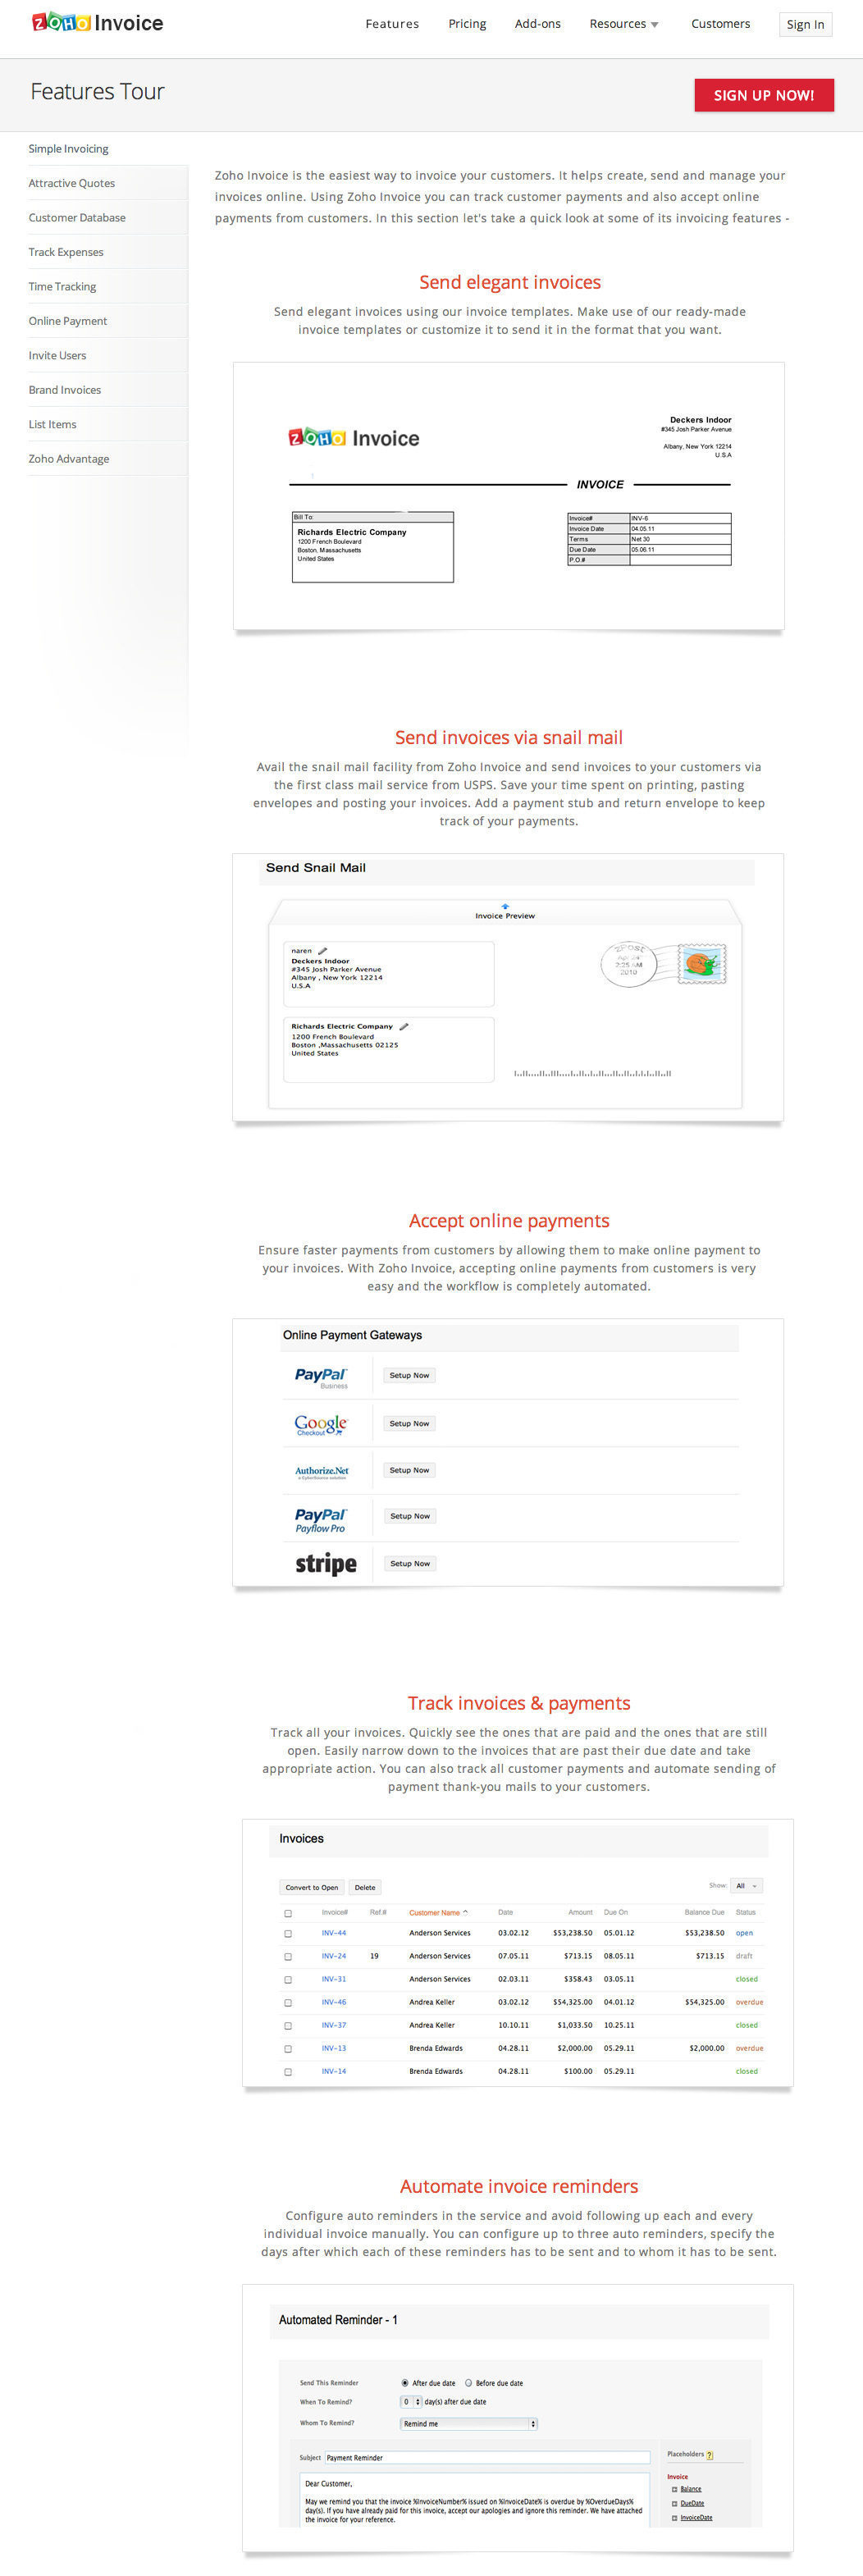 Aaaaeroincus  Ravishing Top  Complaints And Reviews About Zoho Invoice With Extraordinary Zoho Invoice Pricing Zoho Invoice  Simple Invoicing  With Delightful Blank Invoice Template Pdf Also Final Invoice In Addition Quickbooks Invoice Templates And Commercial Invoice Fedex As Well As Printable Invoices Additionally Free Invoice Forms From Consumeraffairscom With Aaaaeroincus  Extraordinary Top  Complaints And Reviews About Zoho Invoice With Delightful Zoho Invoice Pricing Zoho Invoice  Simple Invoicing  And Ravishing Blank Invoice Template Pdf Also Final Invoice In Addition Quickbooks Invoice Templates From Consumeraffairscom